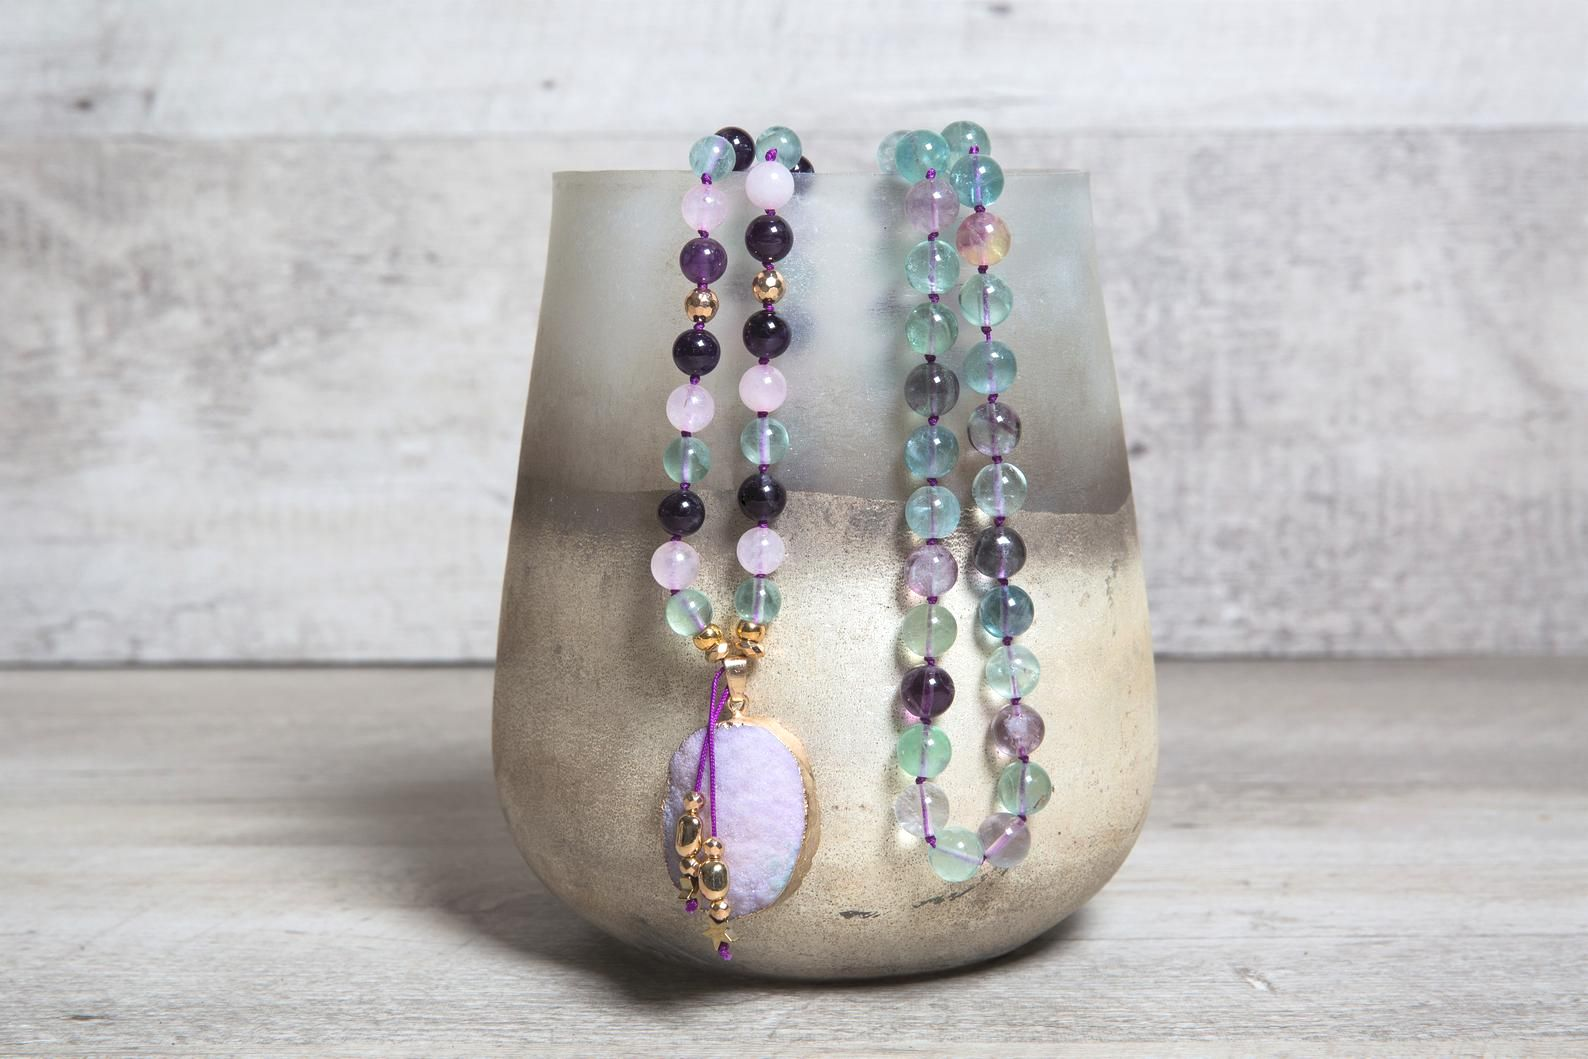 Fluorite, Amethyst n' Rose Quartz Long Mala Necklace with Druzy Agate Pendant, Unique Valentine's Gift for Wife